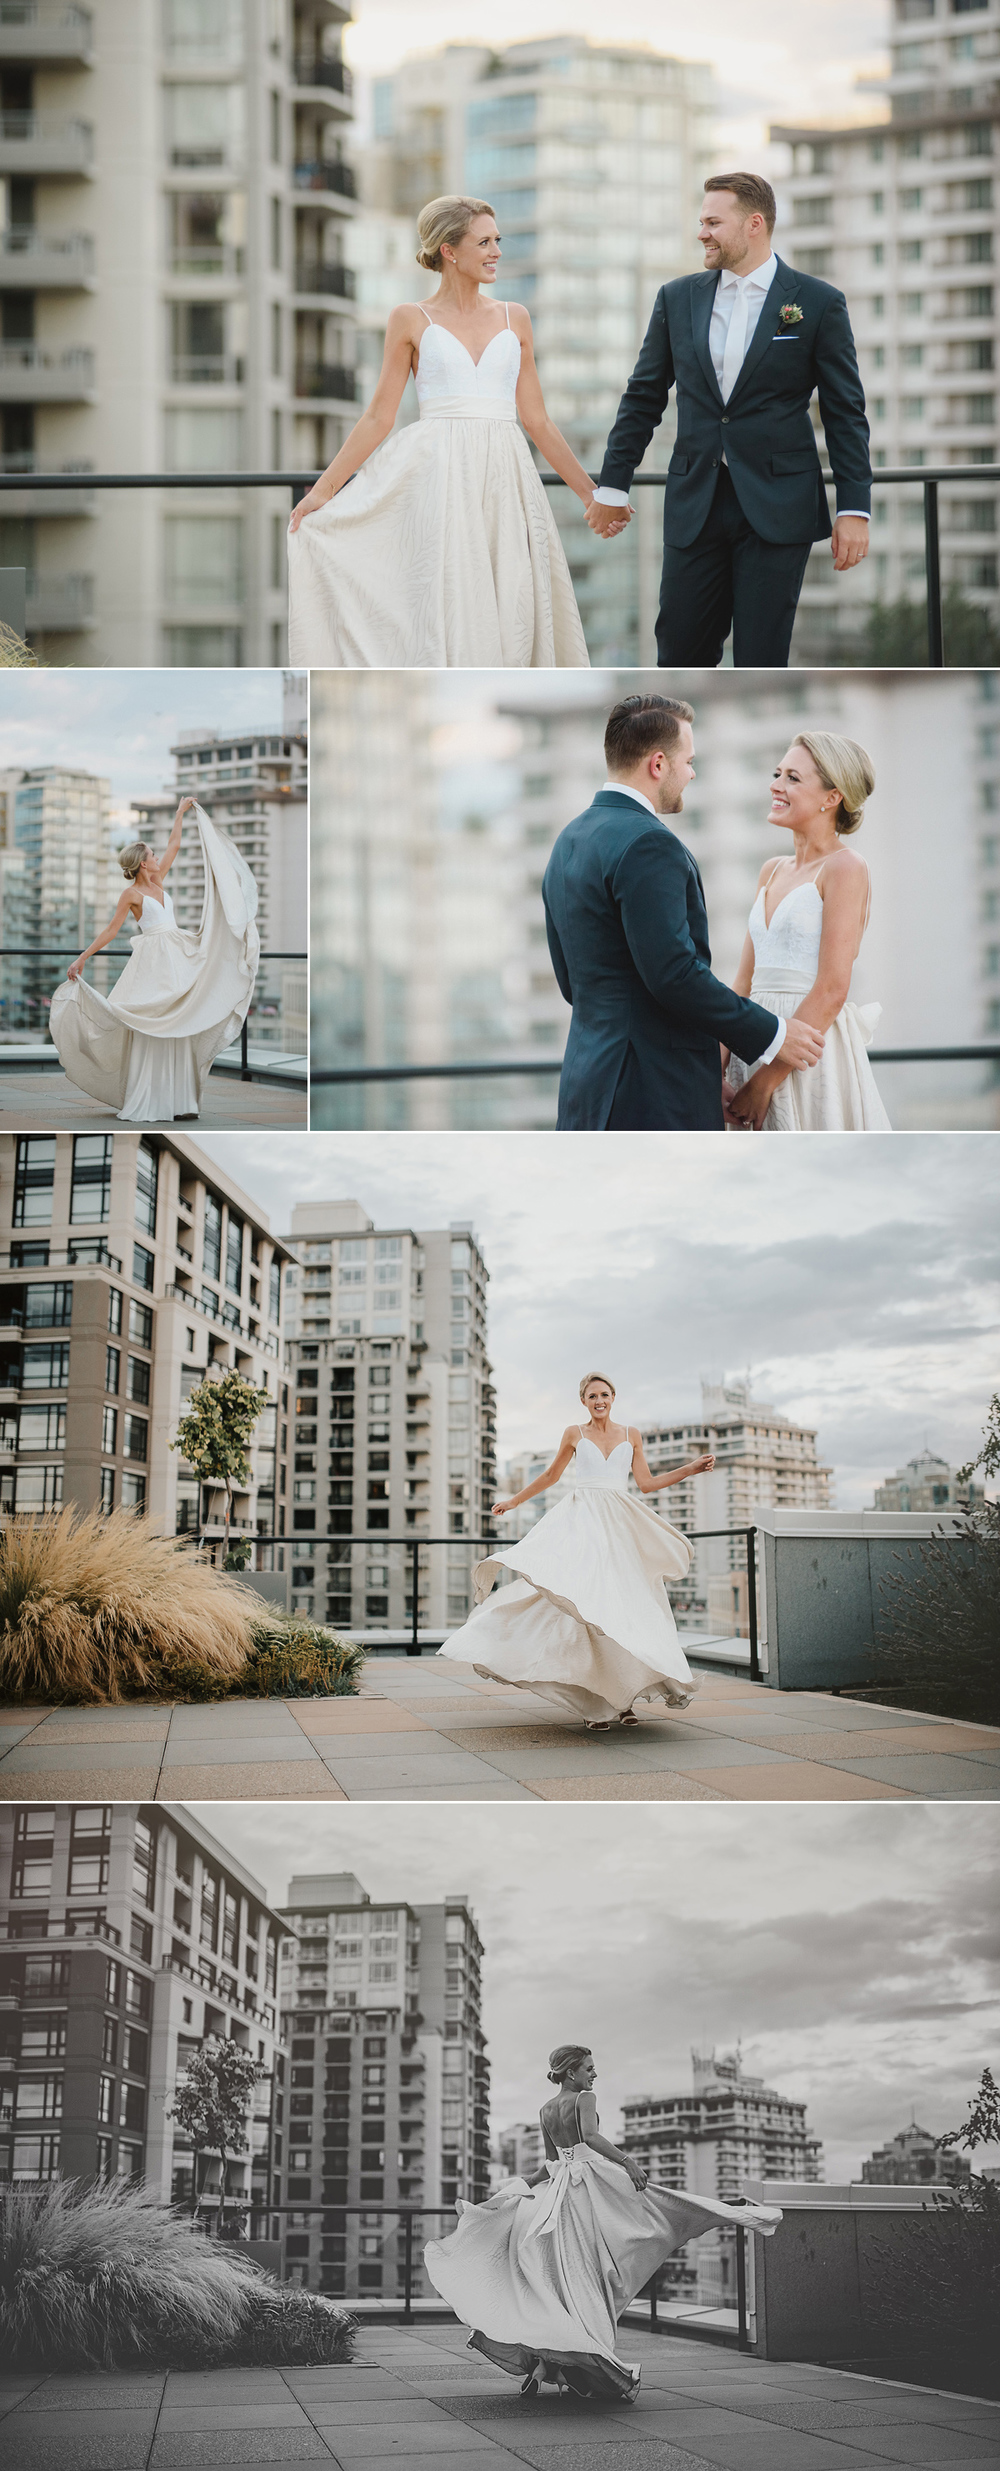 city scape, city wedding, roof top wedding, roof top wedding photos, erin wallis photography